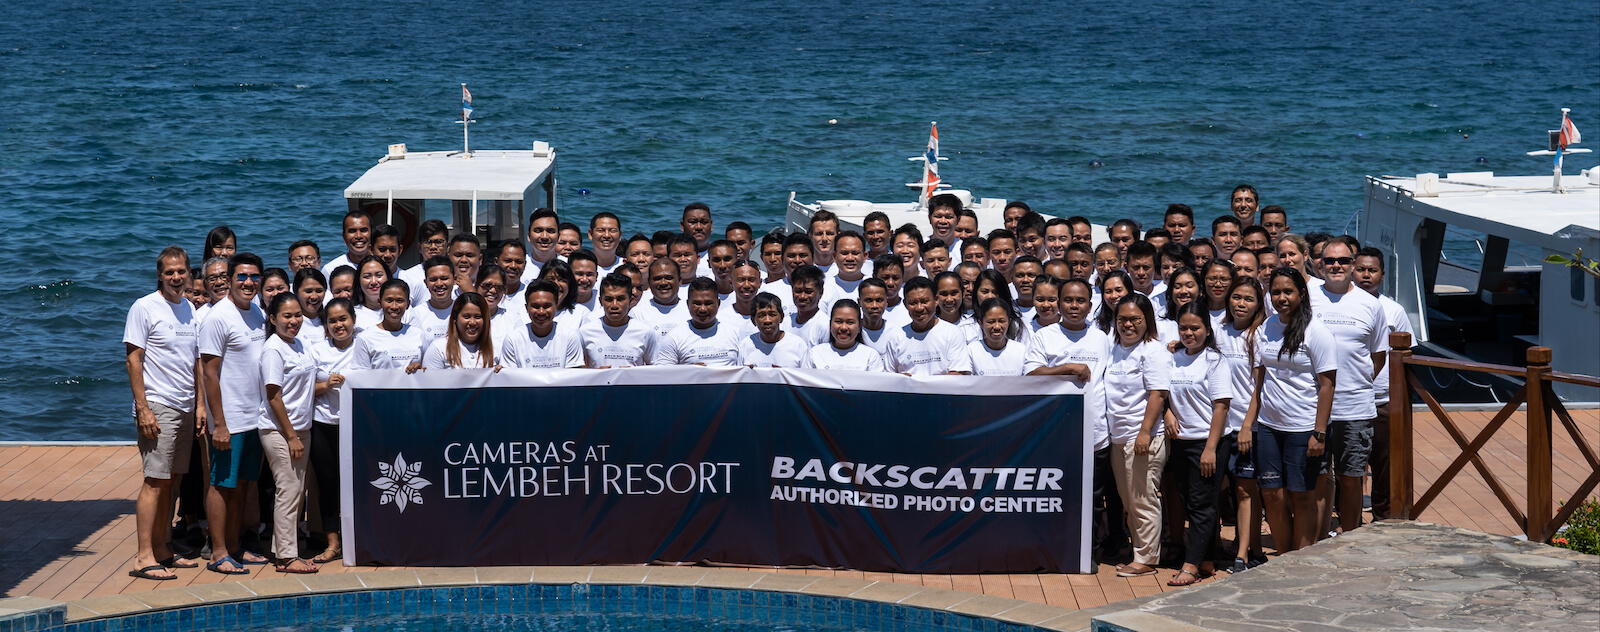 Backscatter Photo Center